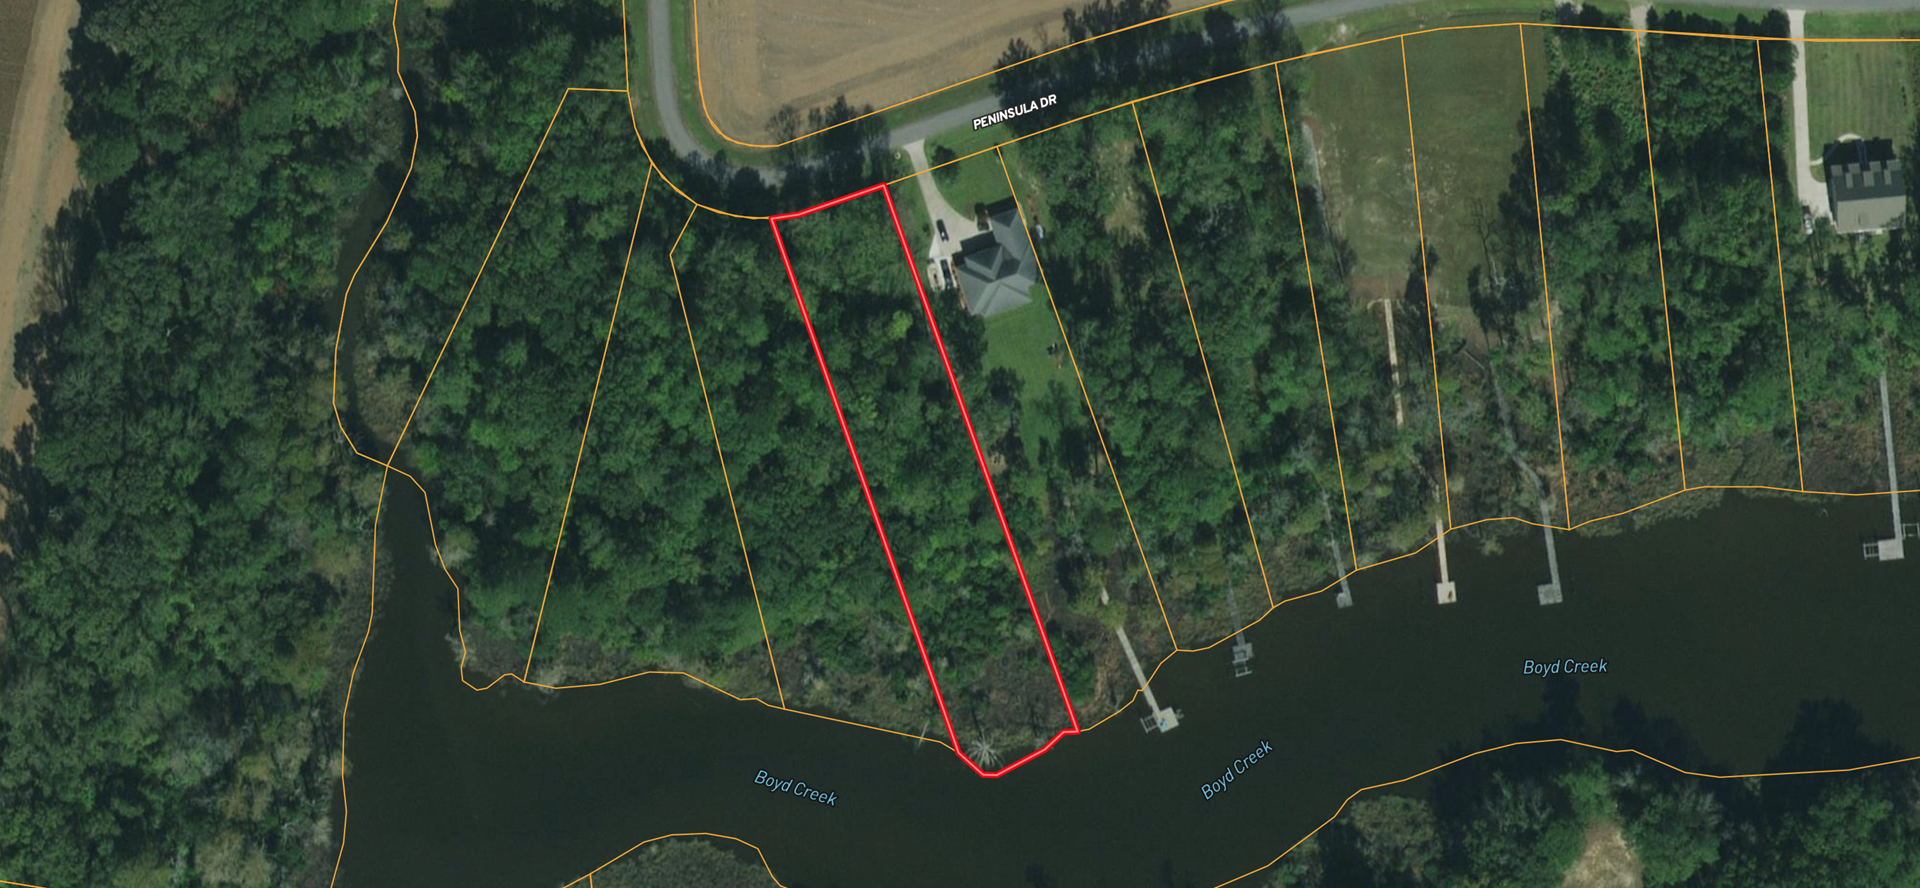 Waterfront lot for sale in Bath, NC